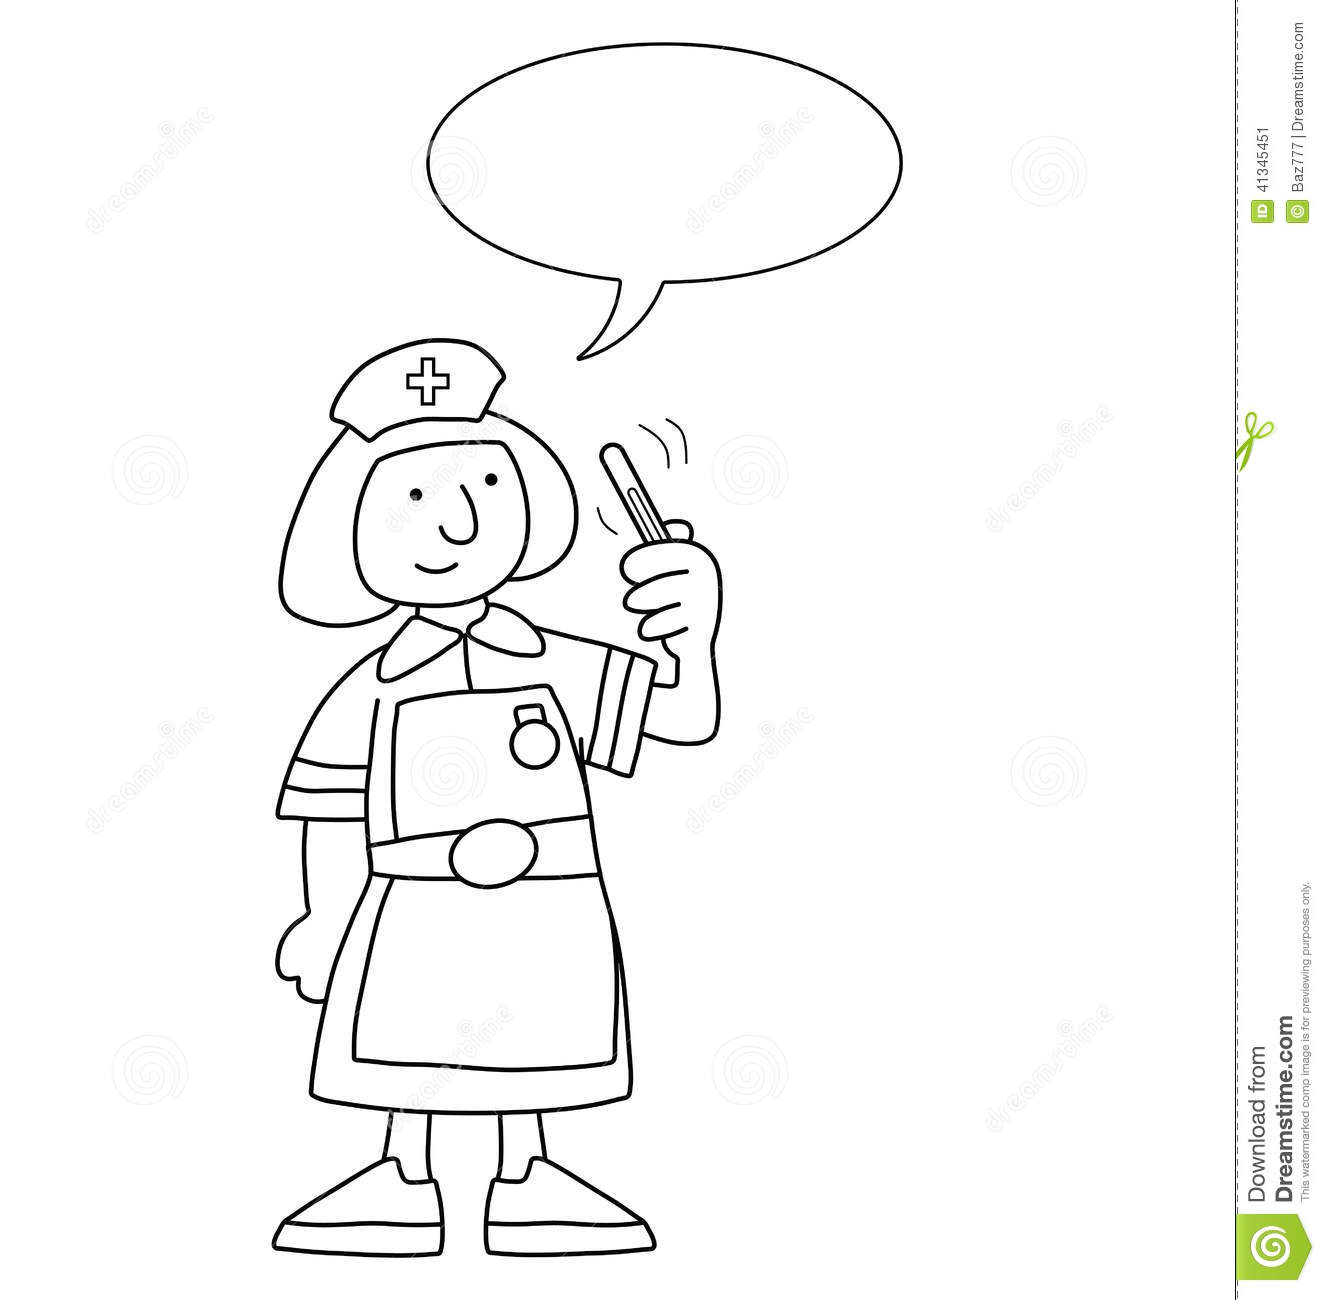 Cartoon Nurse stock vector. Image of drawing, isolated